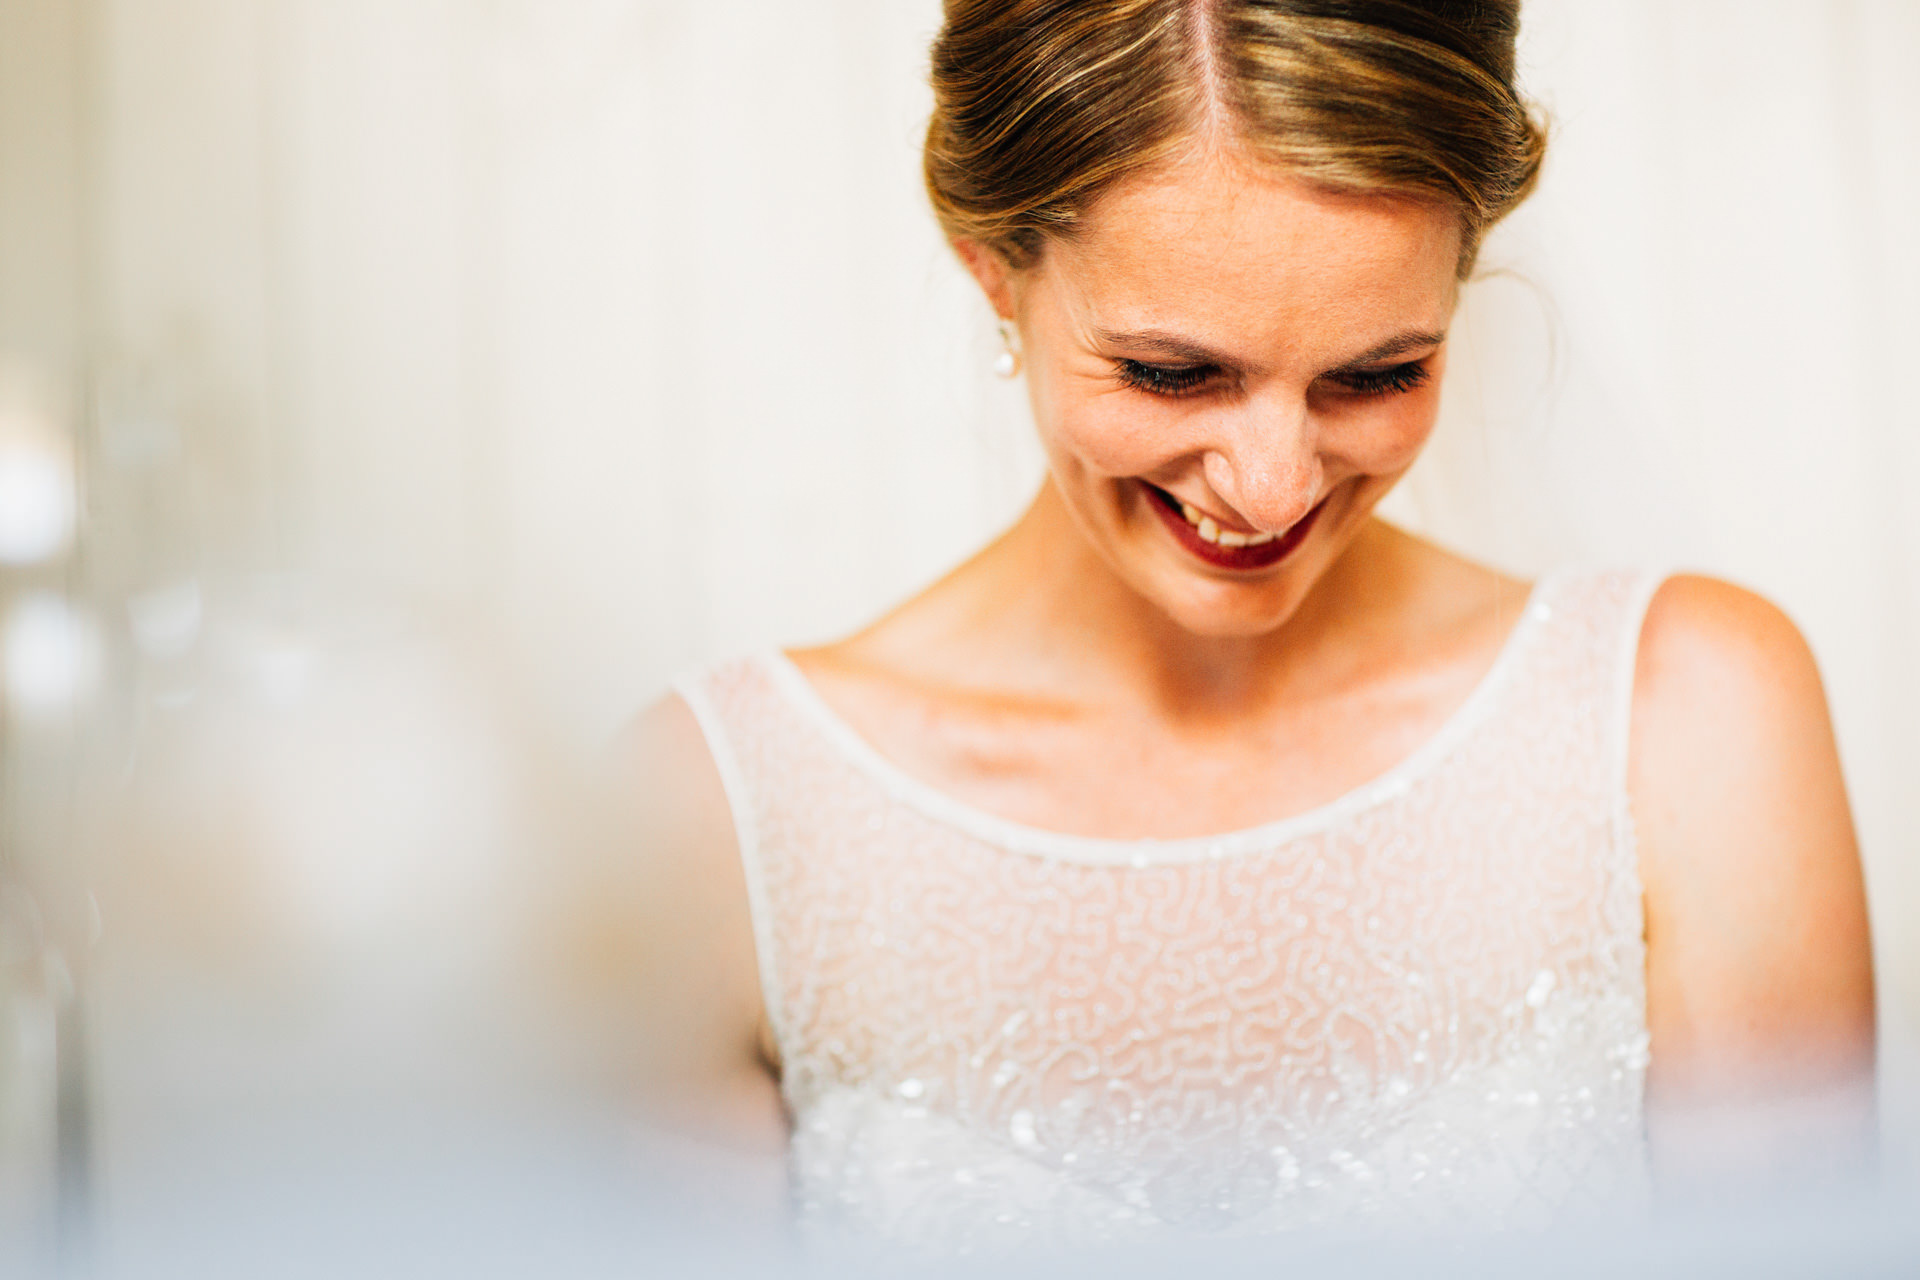 Best wedding photography 2016 - bride close up laughing